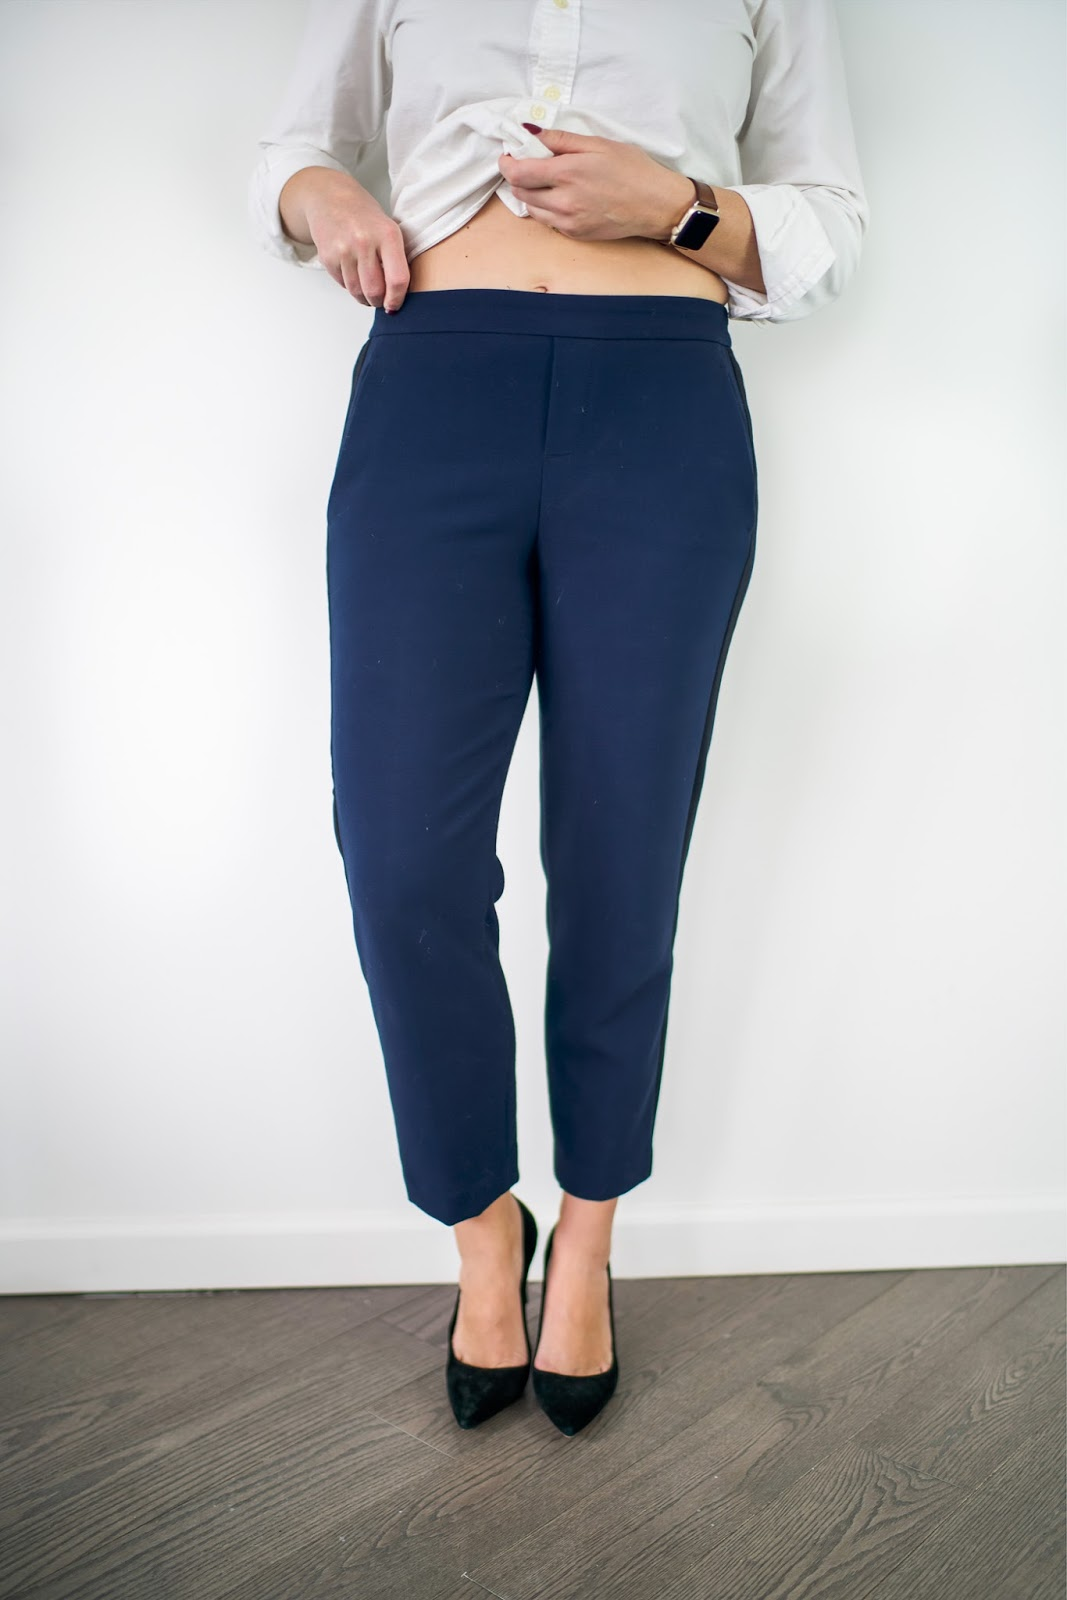 Comfy Work Pants That Feel Like Sweat Pants New York